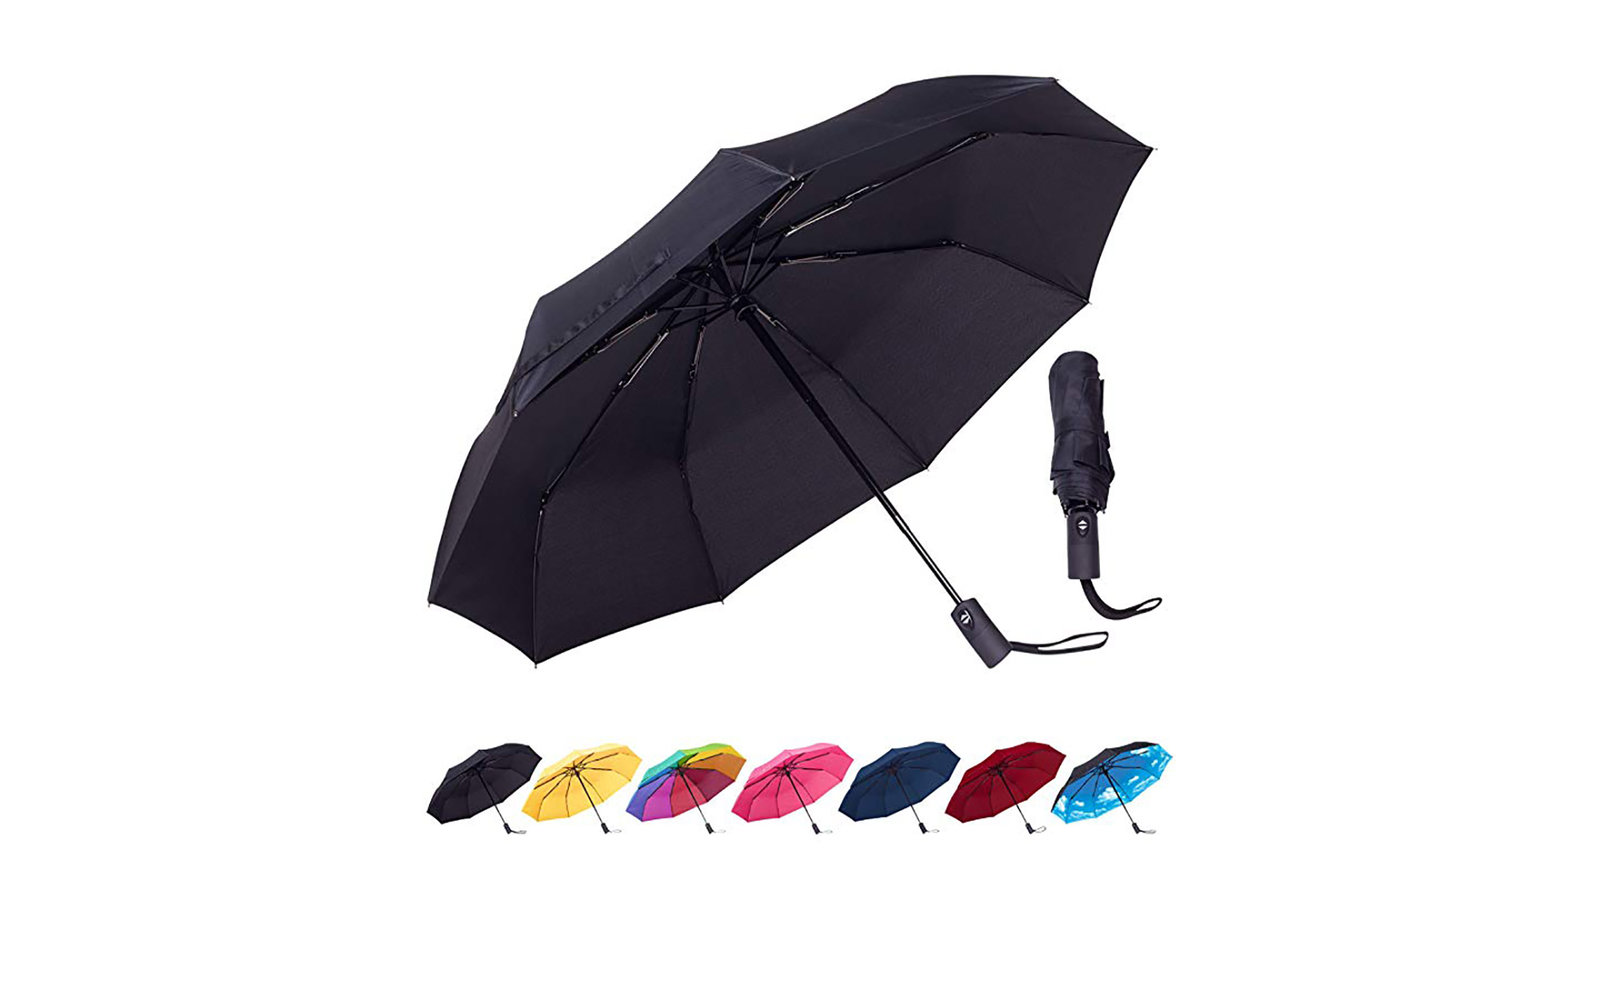 7684fddb3739 The Best Travel Umbrellas That Fit in Your Carry-on Bag